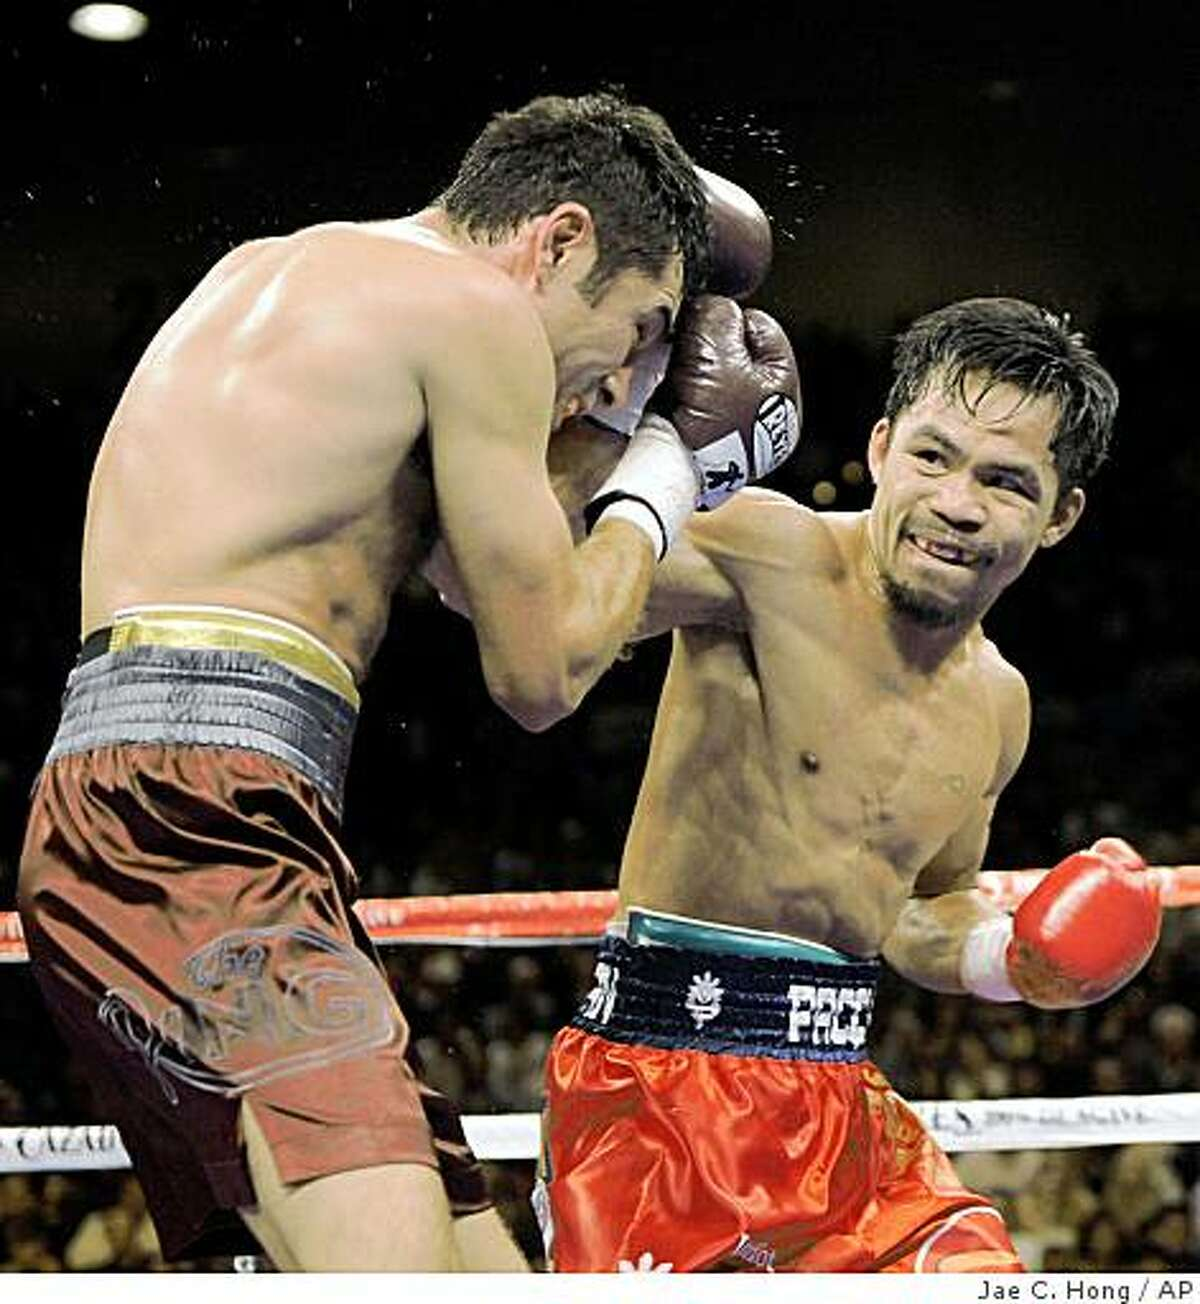 WBC lightweight champion Manny Pacquiao, right, throws a right to the head of Oscar De La Hoya during the fourth round of their welterweight boxing match in Las Vegas, Saturday, Dec. 6, 2008. (AP Photo/Jae C. Hong)